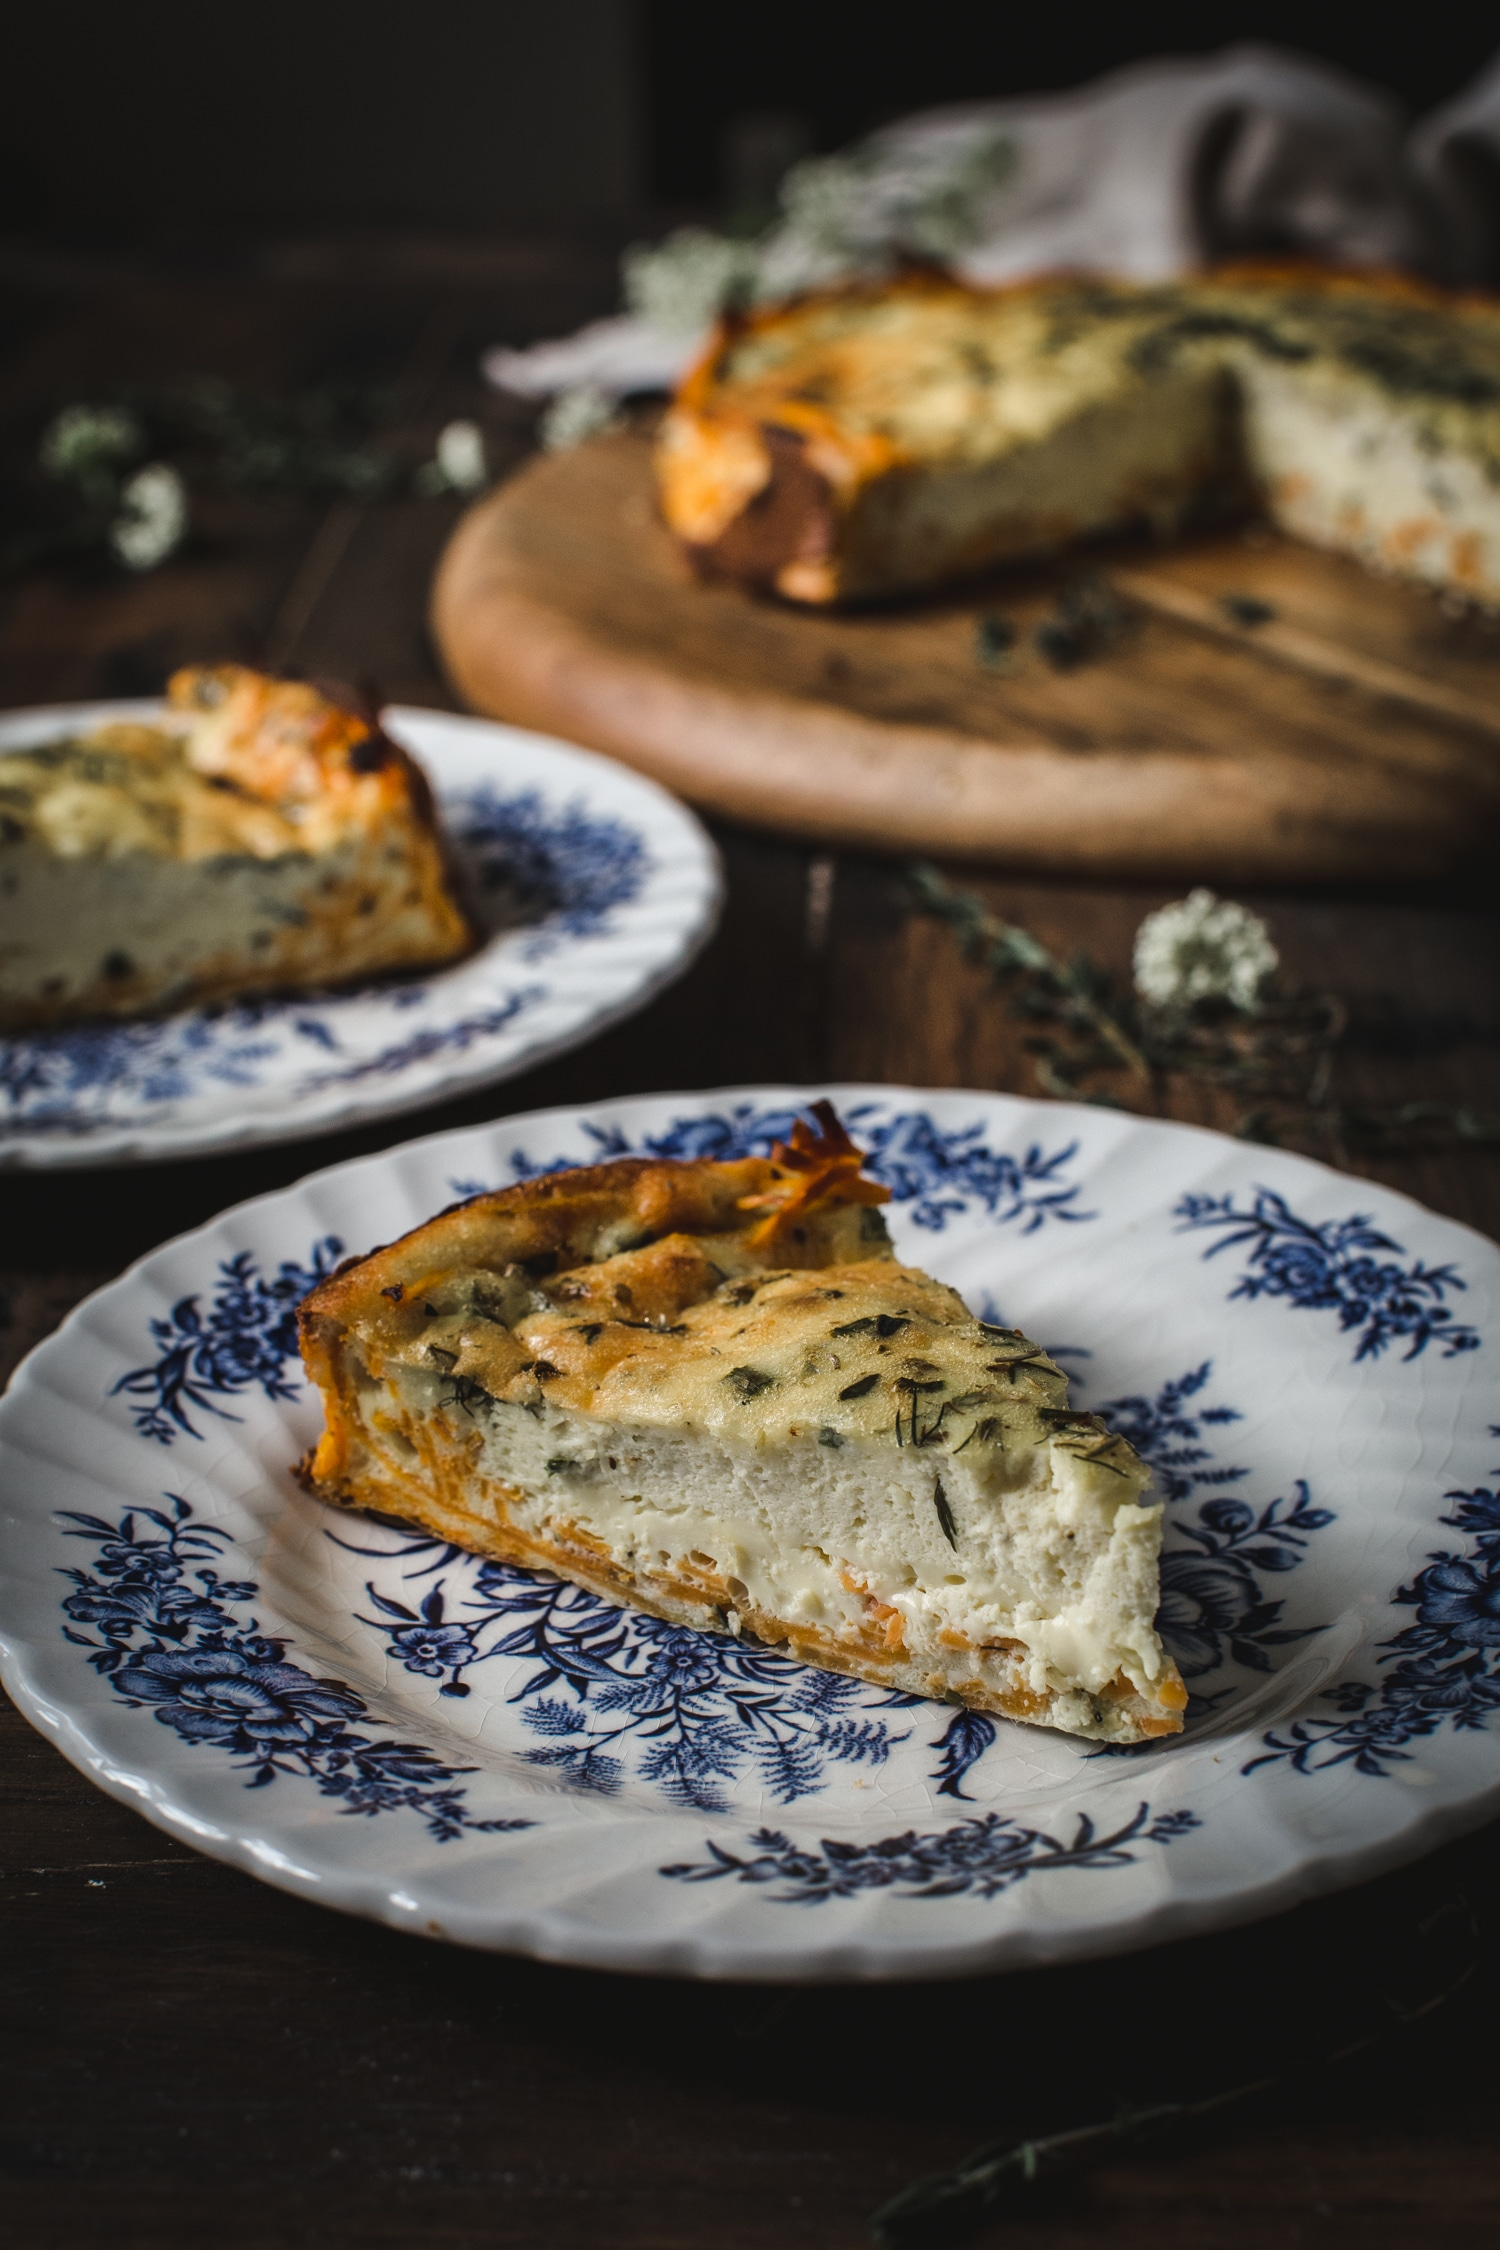 goat cheese quiche on blue and white china plate